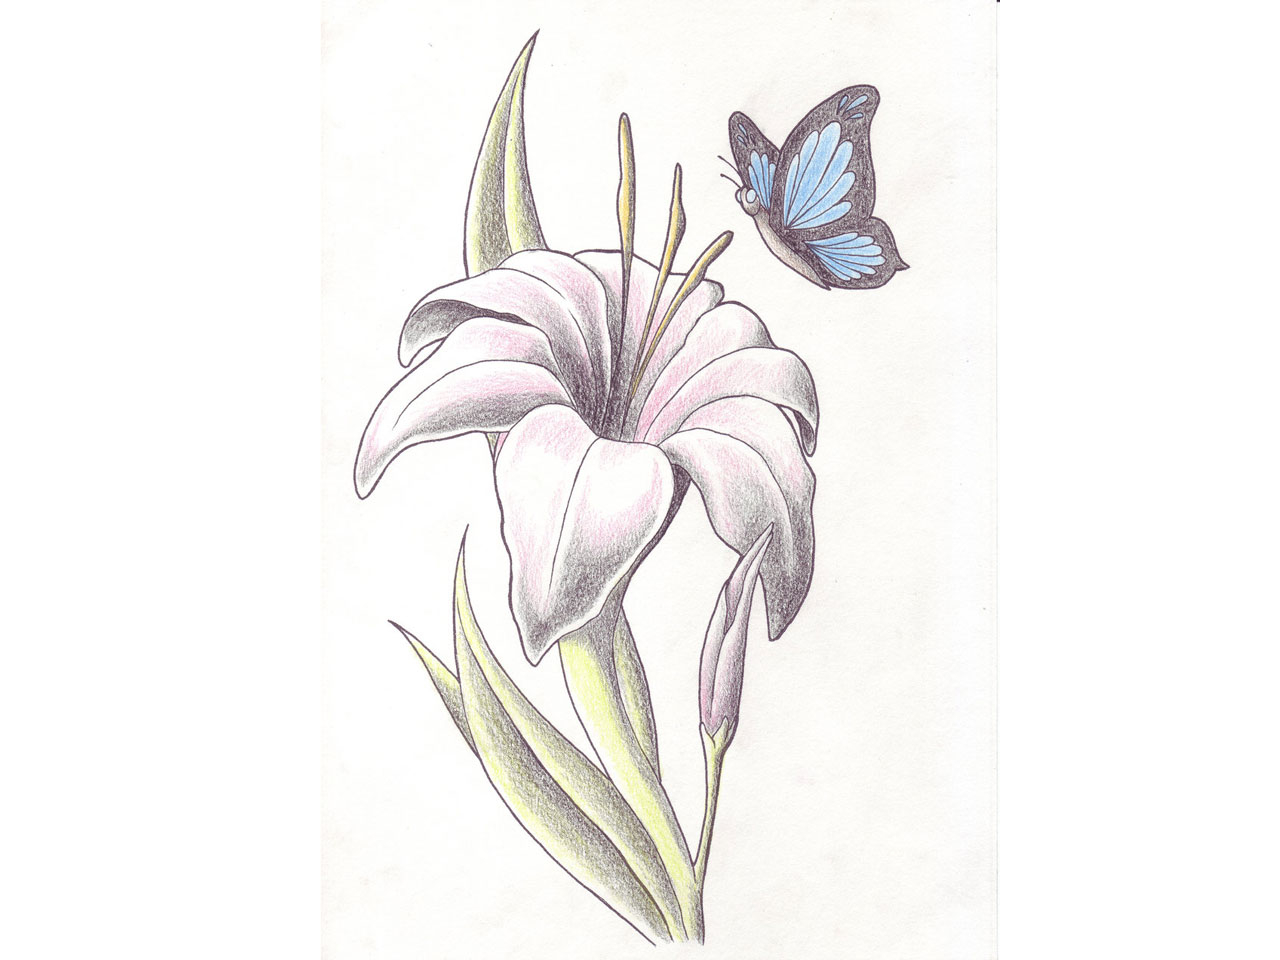 43 Lily With Butterfly Tattoos Ideas throughout measurements 1280 X 960